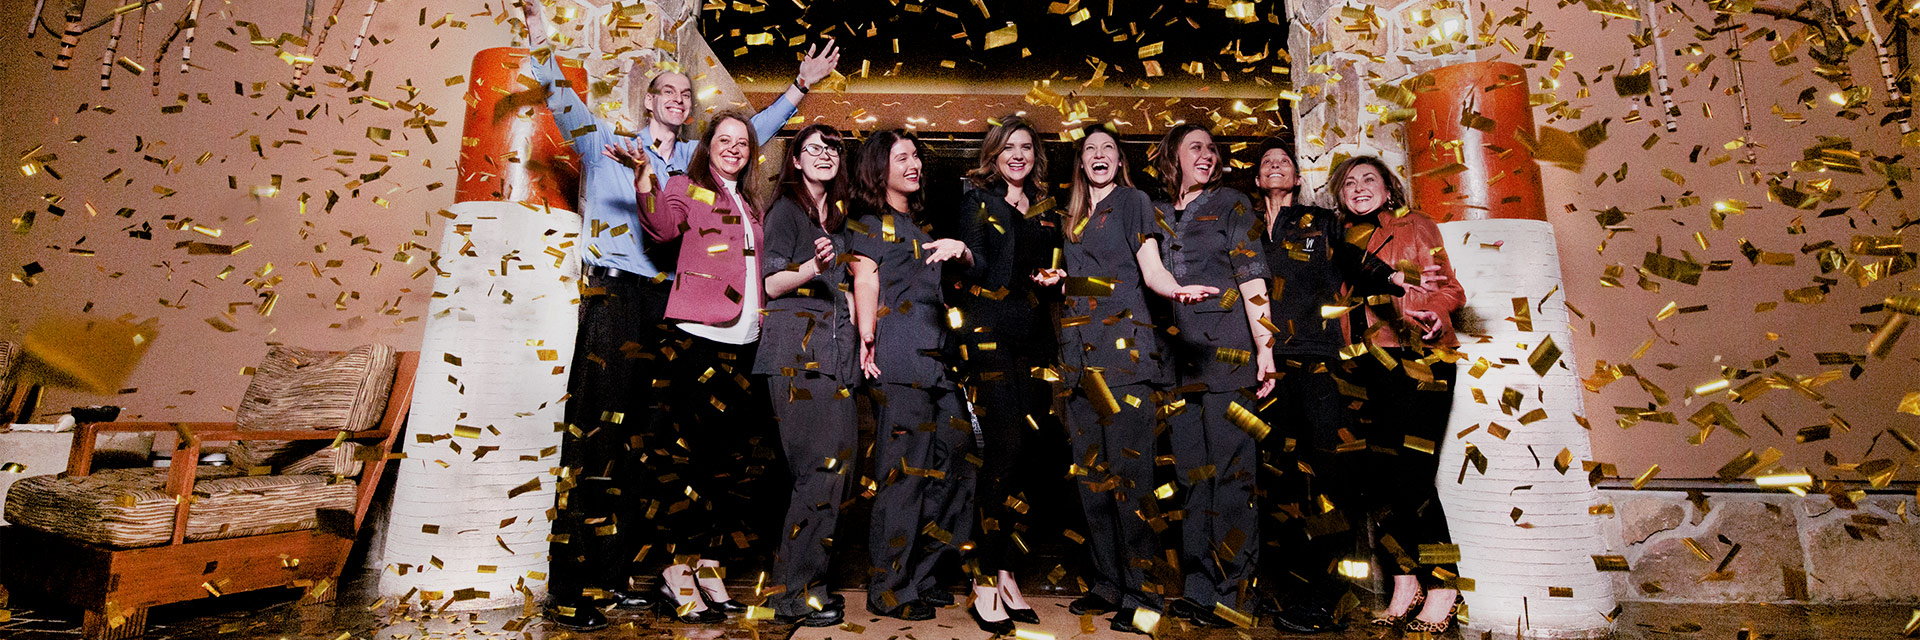 A group of women standing and smiling with confetti in the air